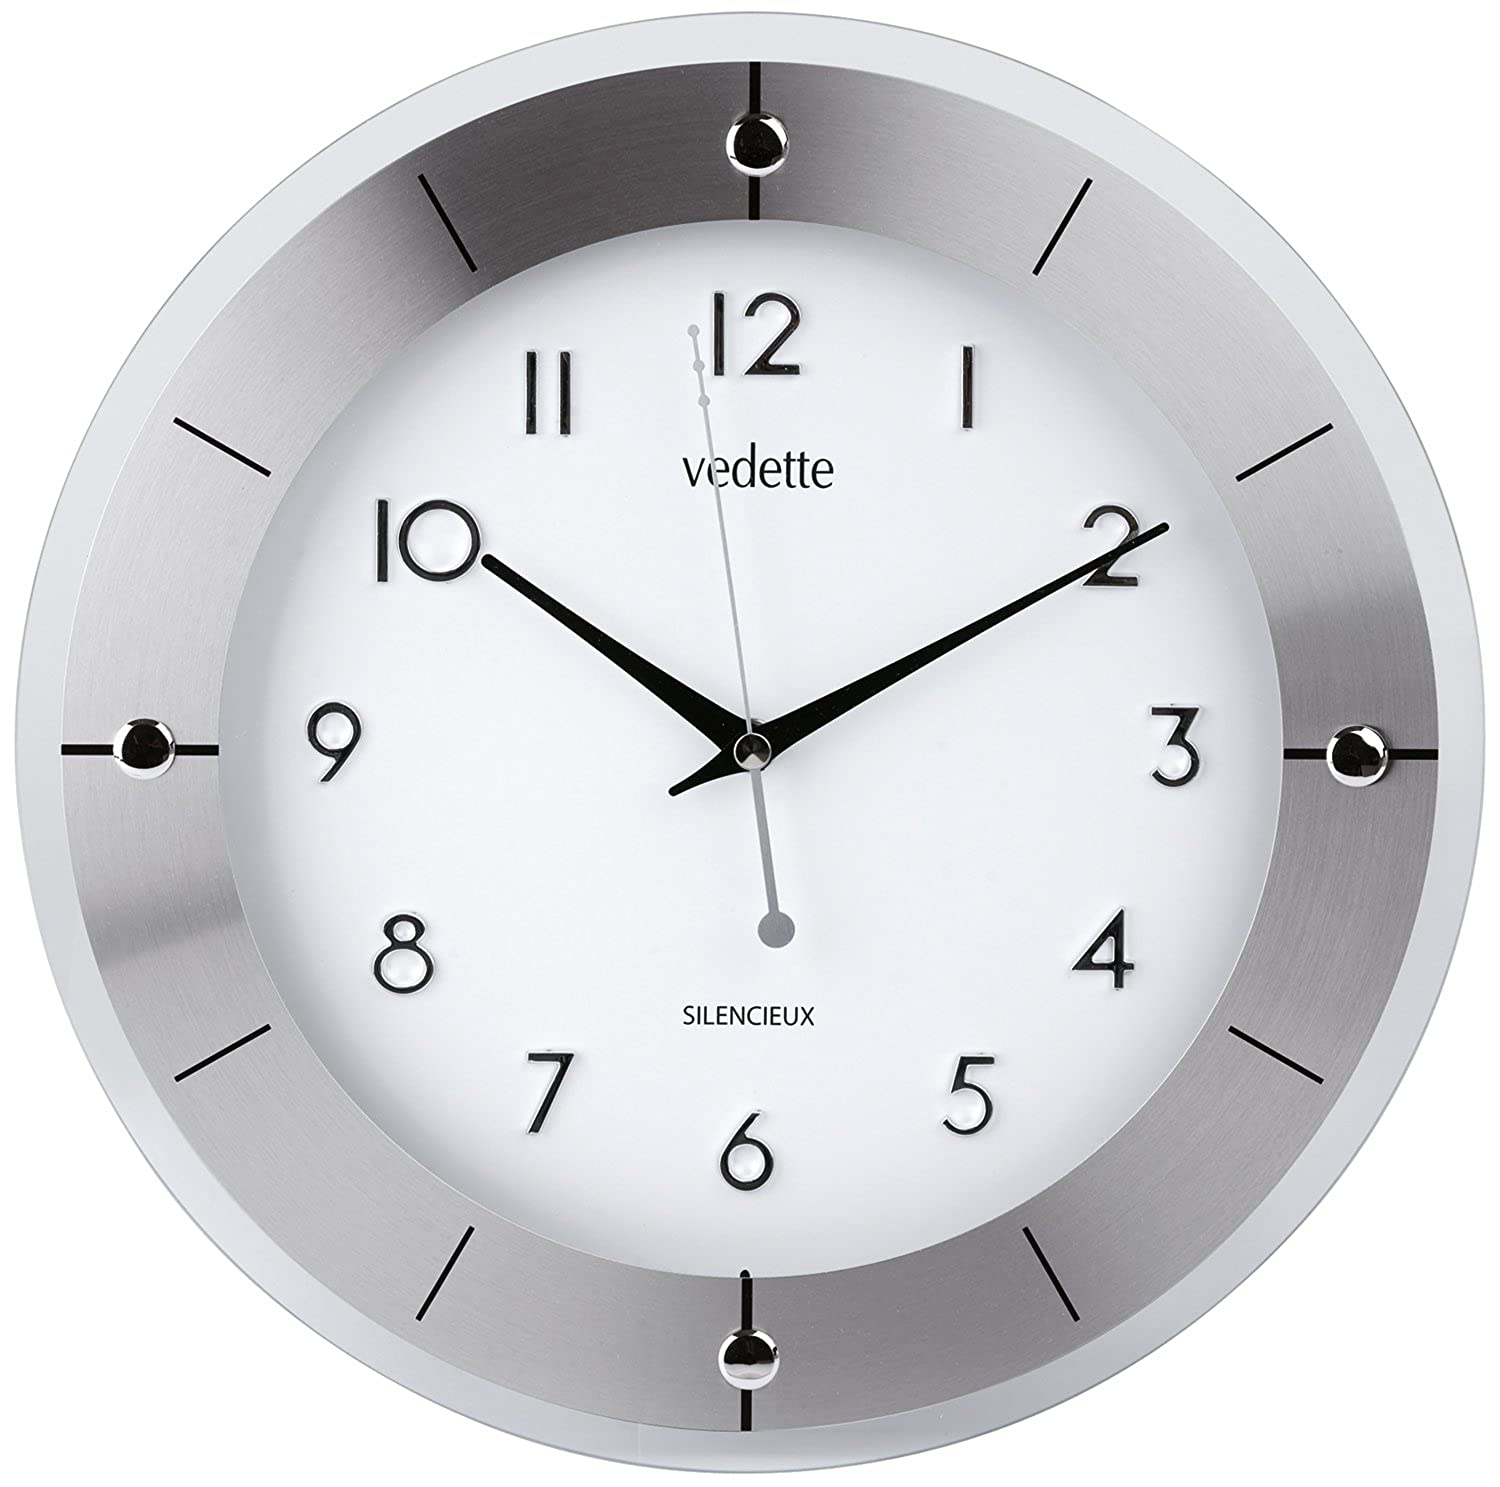 Awesome vedette vp pendule entourage verre et aluminium for Horloge murale design silencieuse